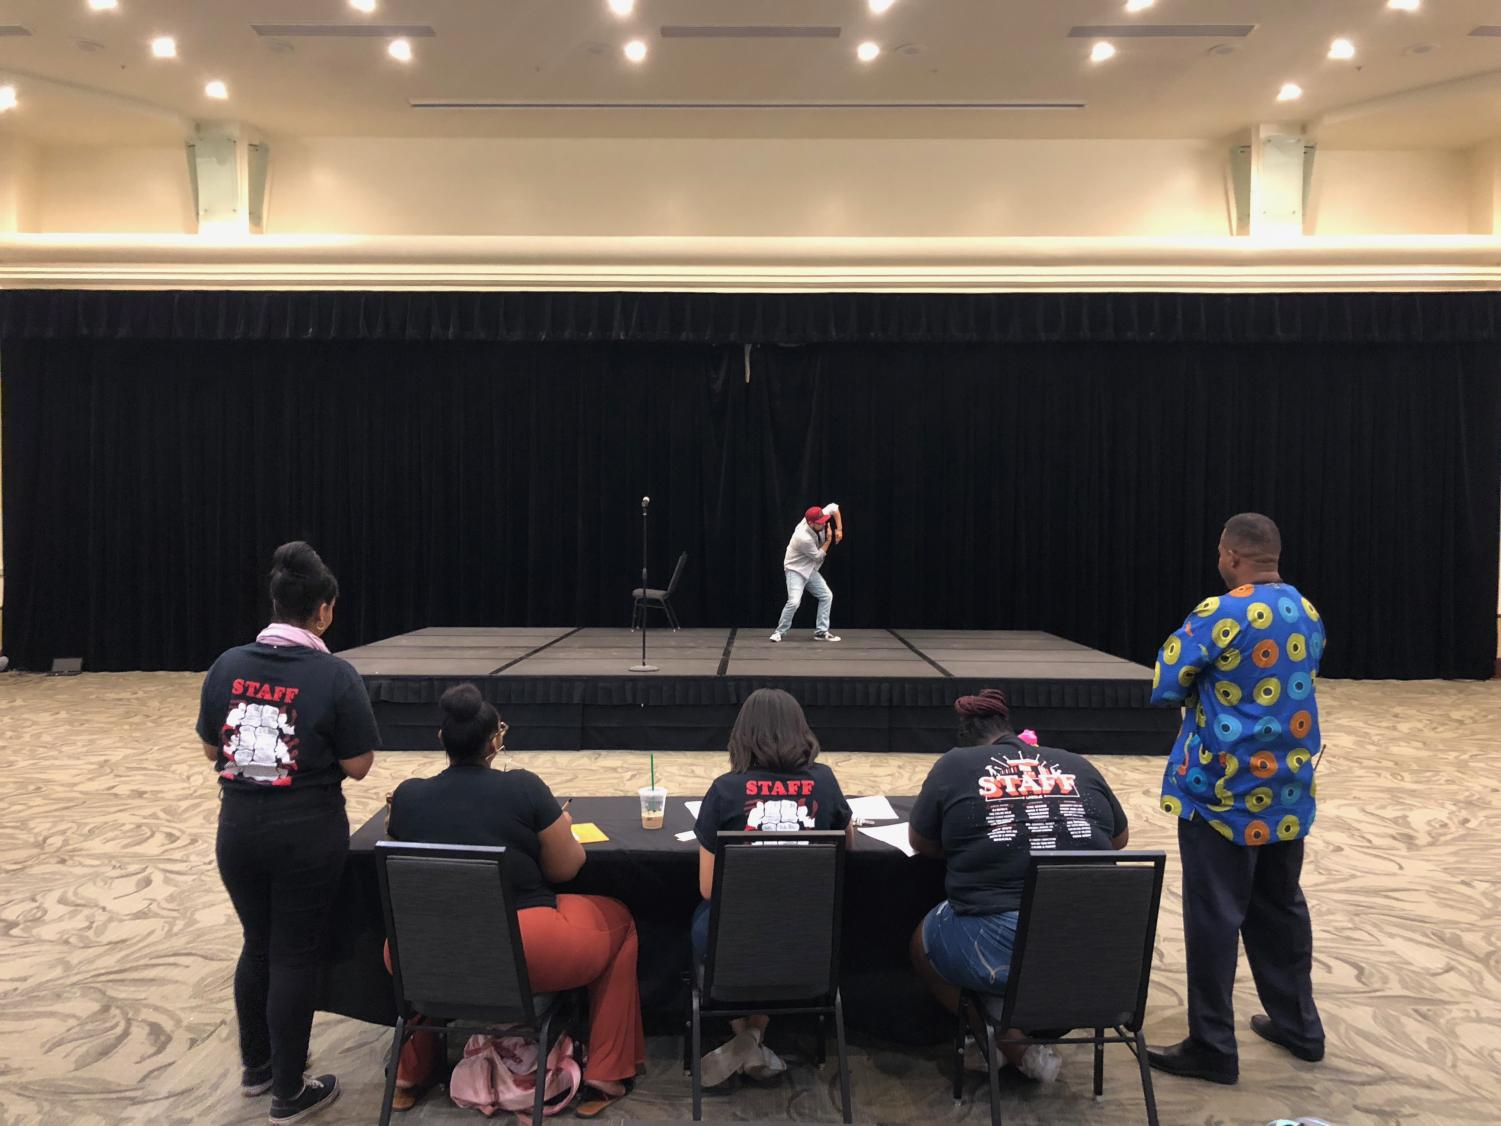 From left to right, Gabriela Mascoll, Tynisha Jones, Danielle Carr, Audriana Berry, and Ajamu Lamumba watch Sac State student Kevin Gutierrez perform his freestyle hip hop routine in the University Union Ballroom on Thursday, Sept. 20, 2018.